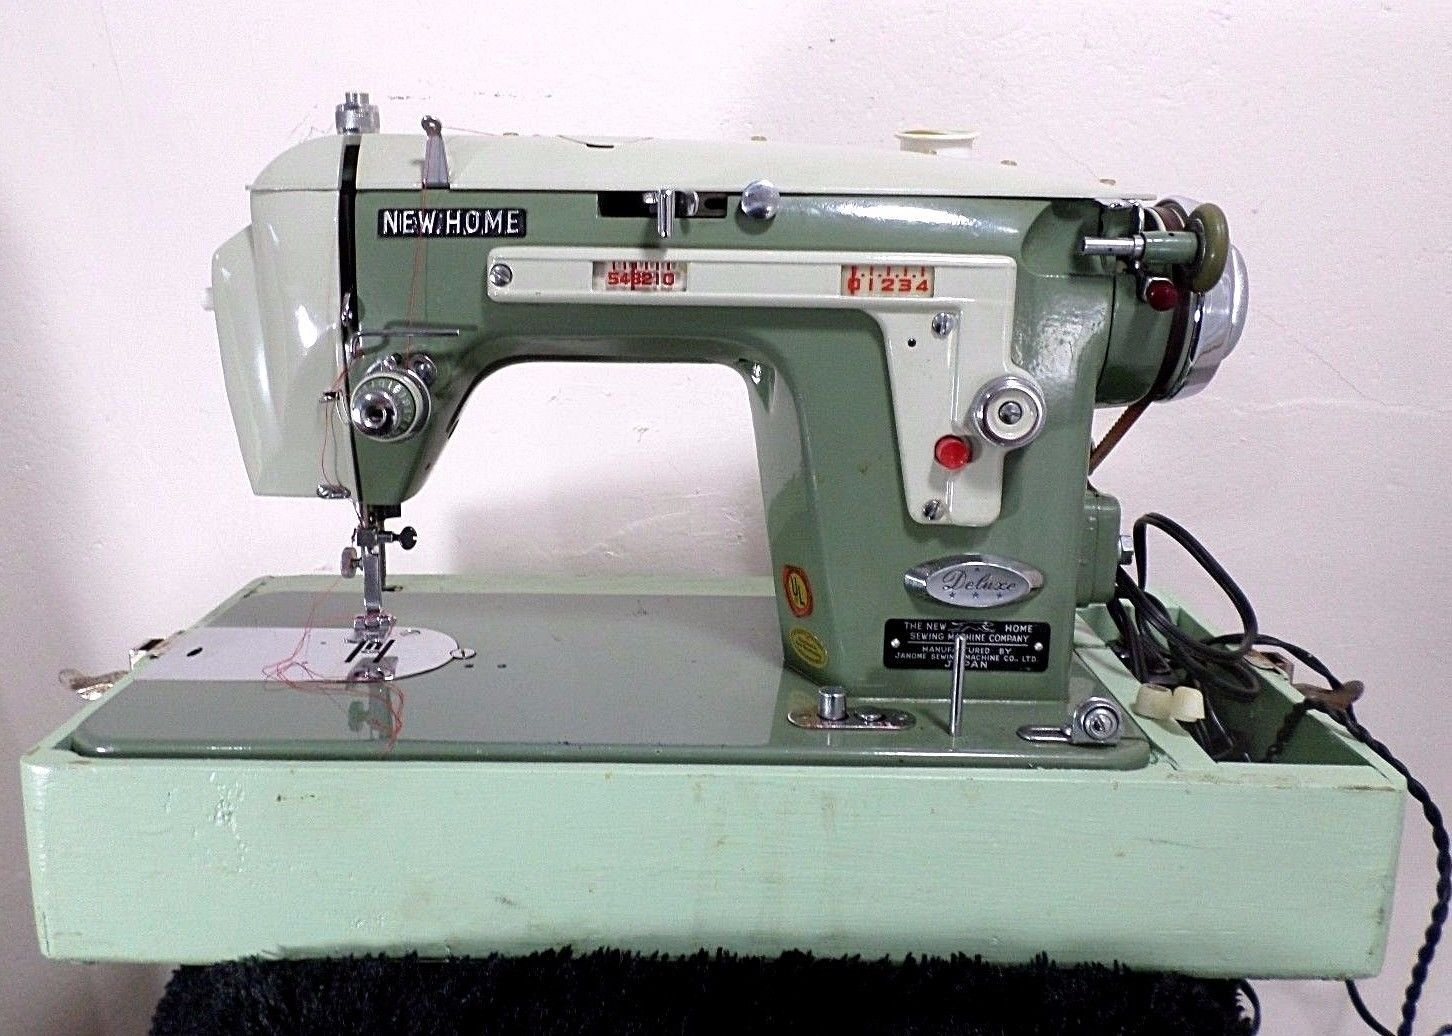 Janome New Home Deluxe Sewing Machine Model 534 Japan   eBay